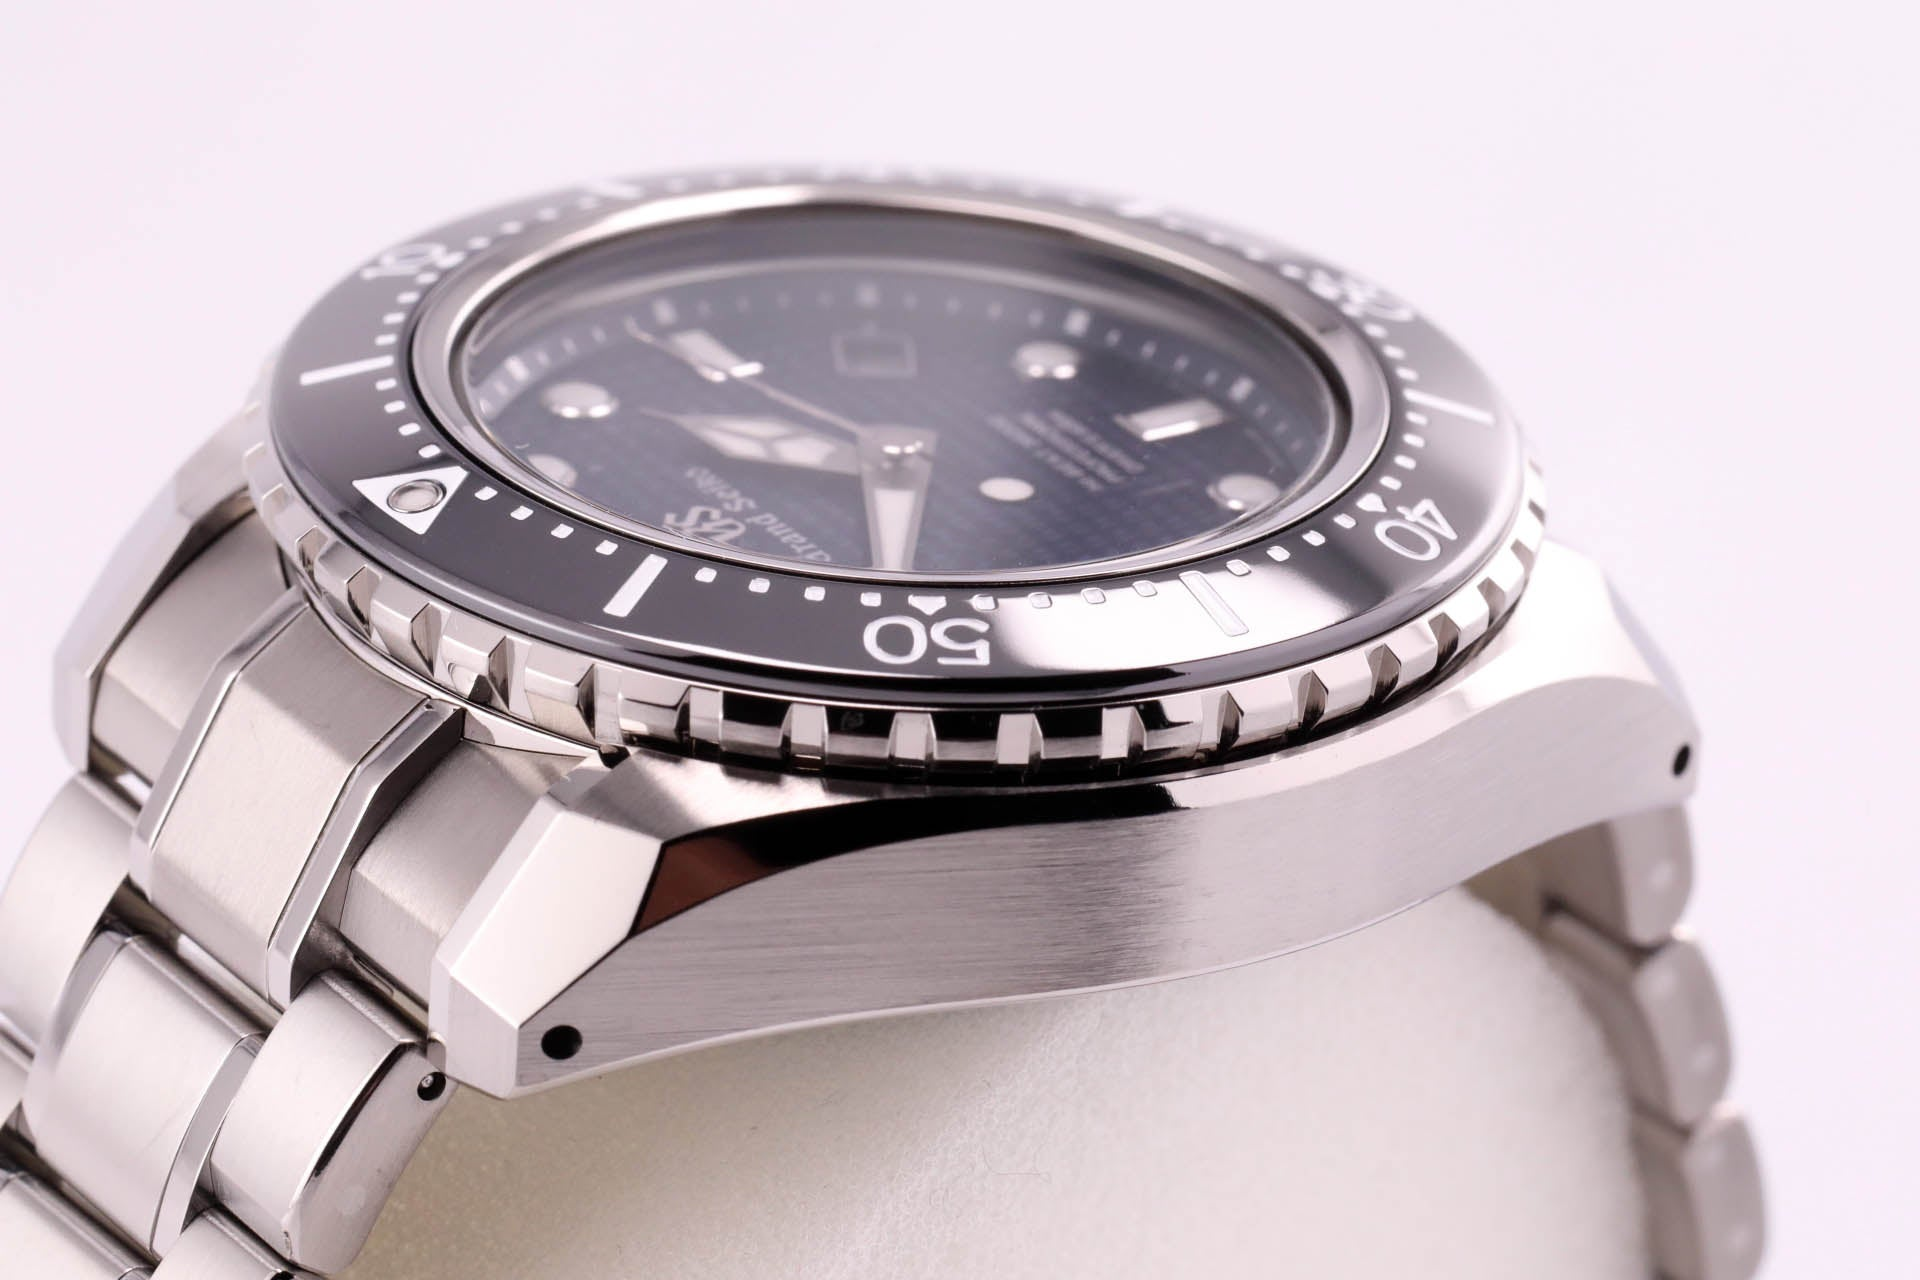 Grand Seiko Hi-Beat Professional Diver Blue Dial Titanium Limited Edition